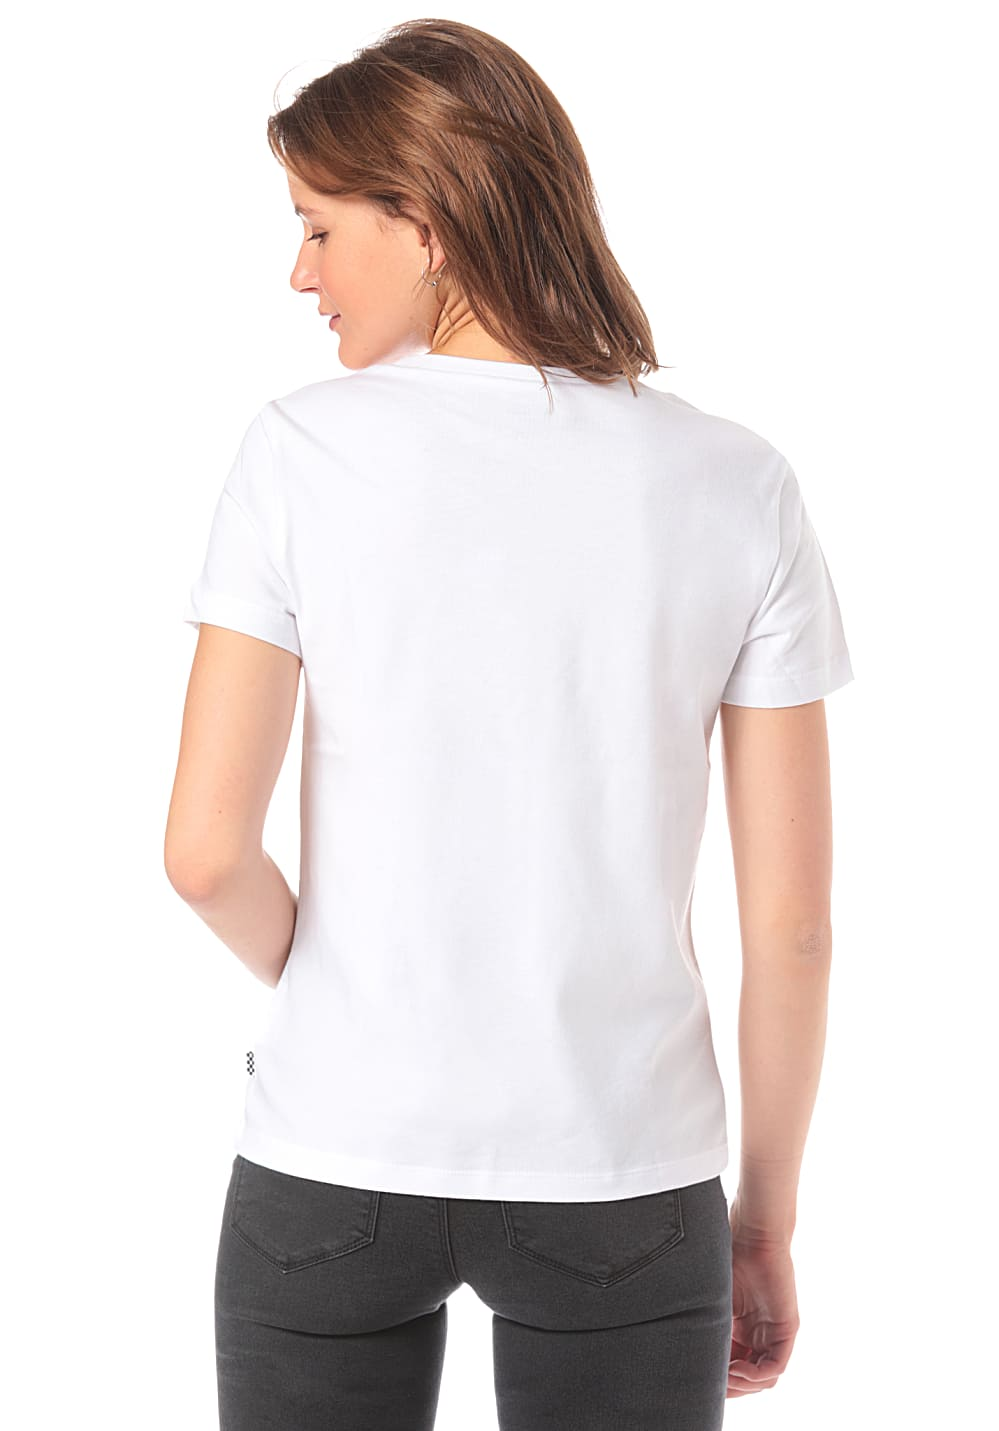 3936b1db ... Vans Boxed Rose Checks - T-Shirt for Women - White. Back to Overview.  1; 2. Previous